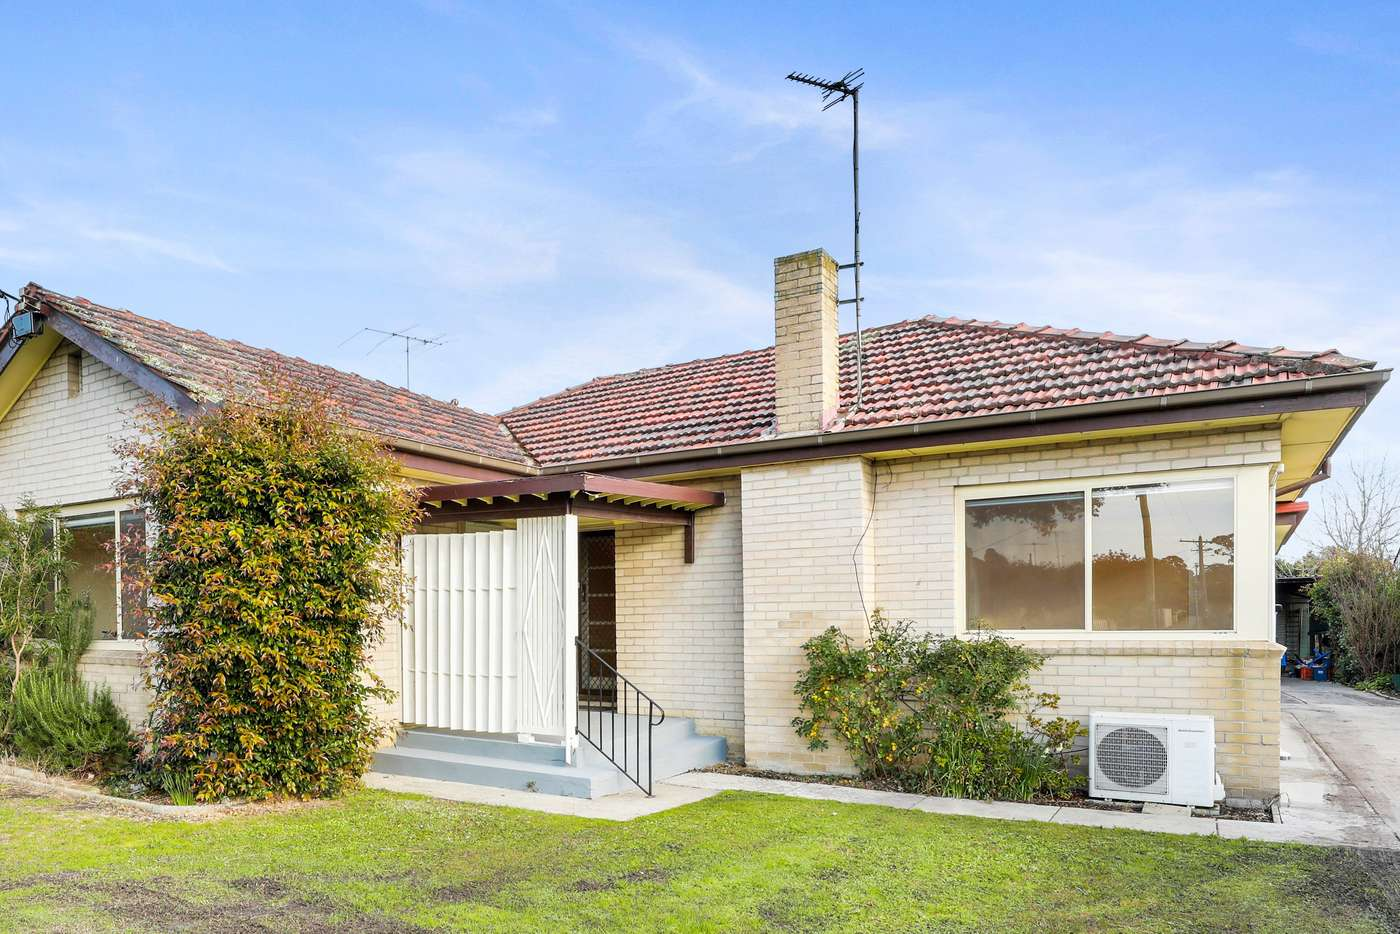 Main view of Homely house listing, 23 Mcdonald St, Morwell VIC 3840